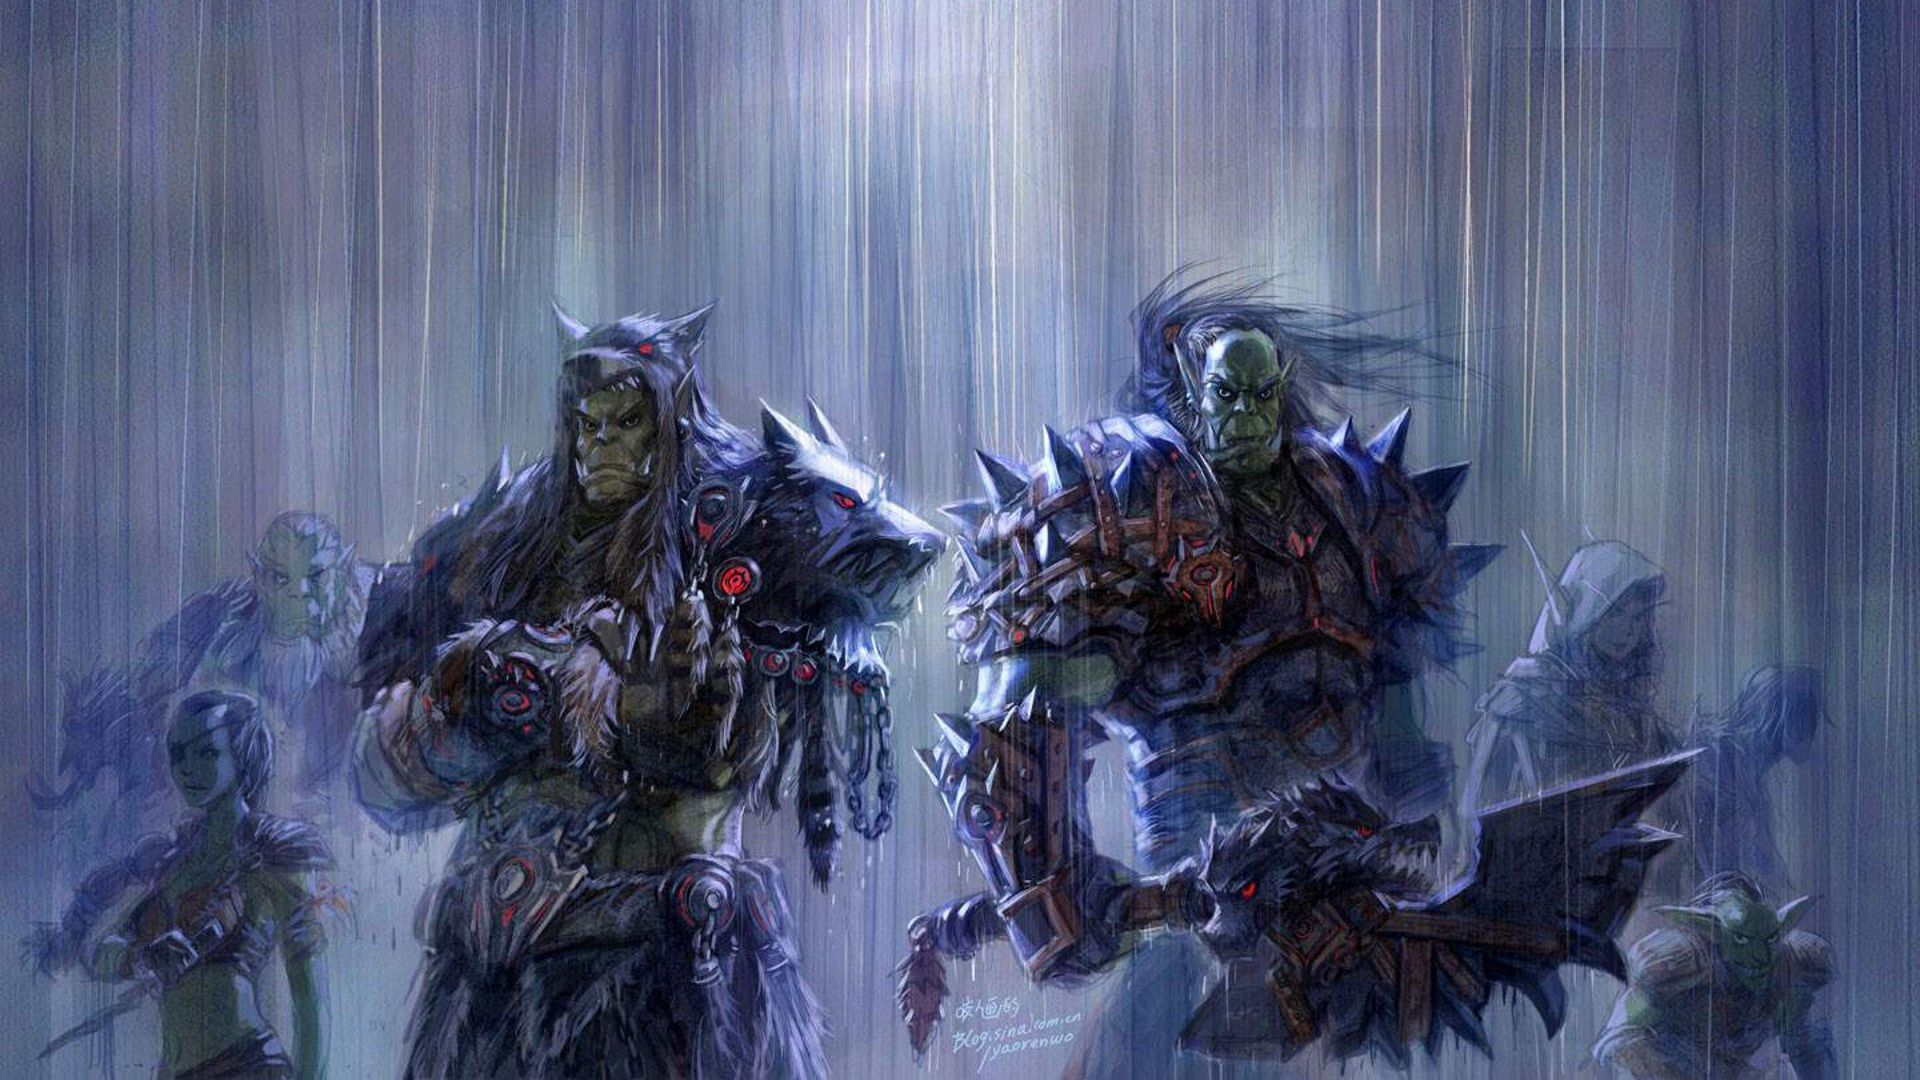 1920x1080 px Cool world of warcraft pic by Trayton Peacock for : pocketfullofgrace.com